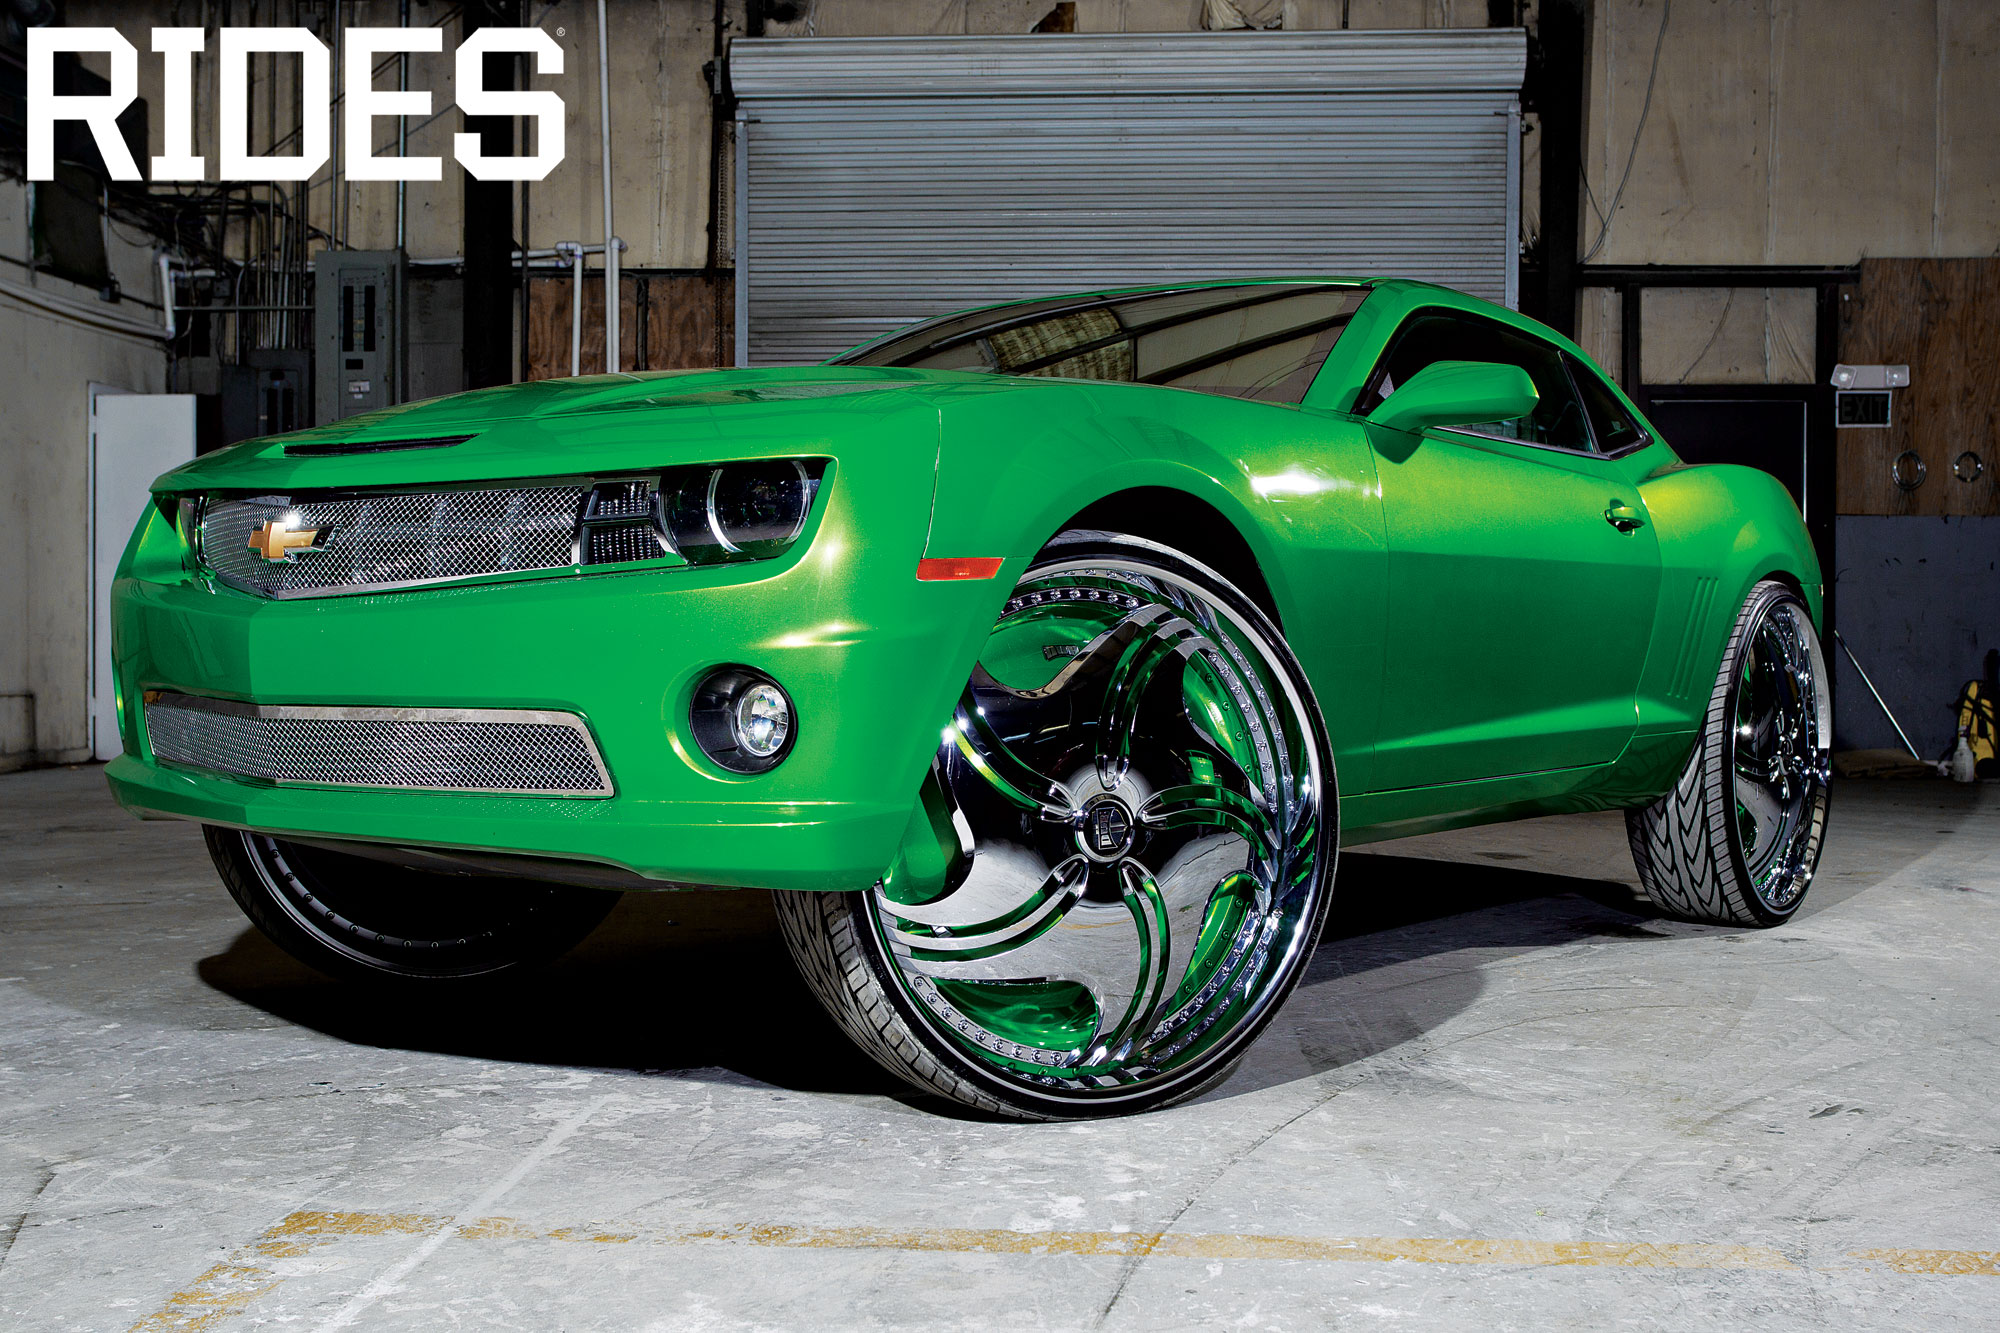 rides cars chevy chevrolet camaro 30s wallpaper